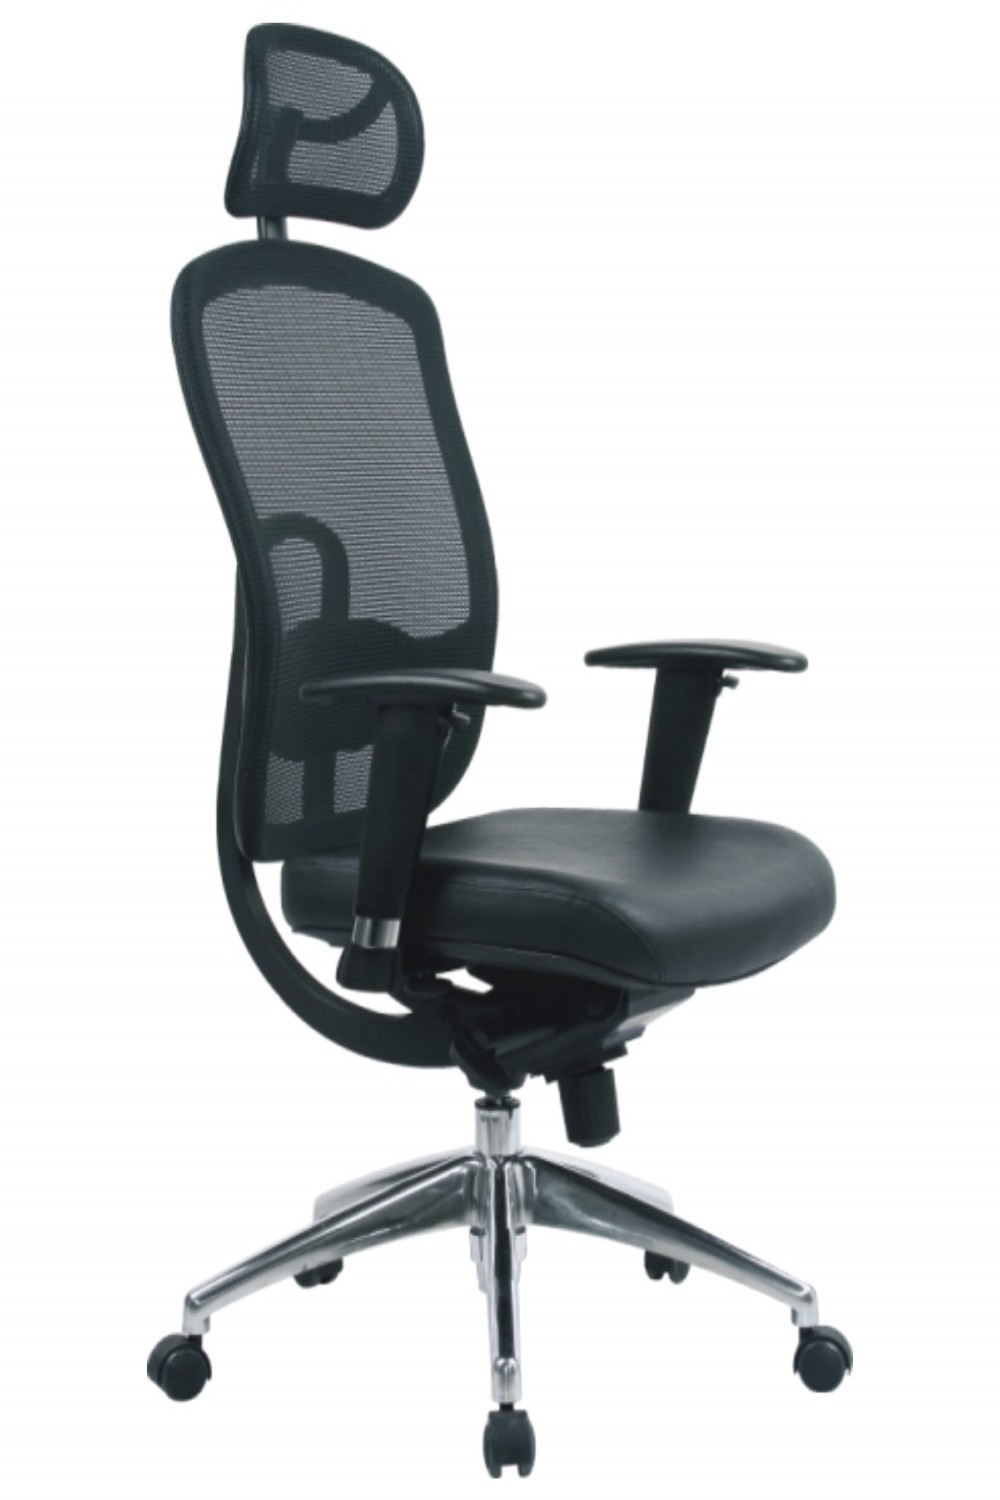 Humanscale Liberty Chair Price India